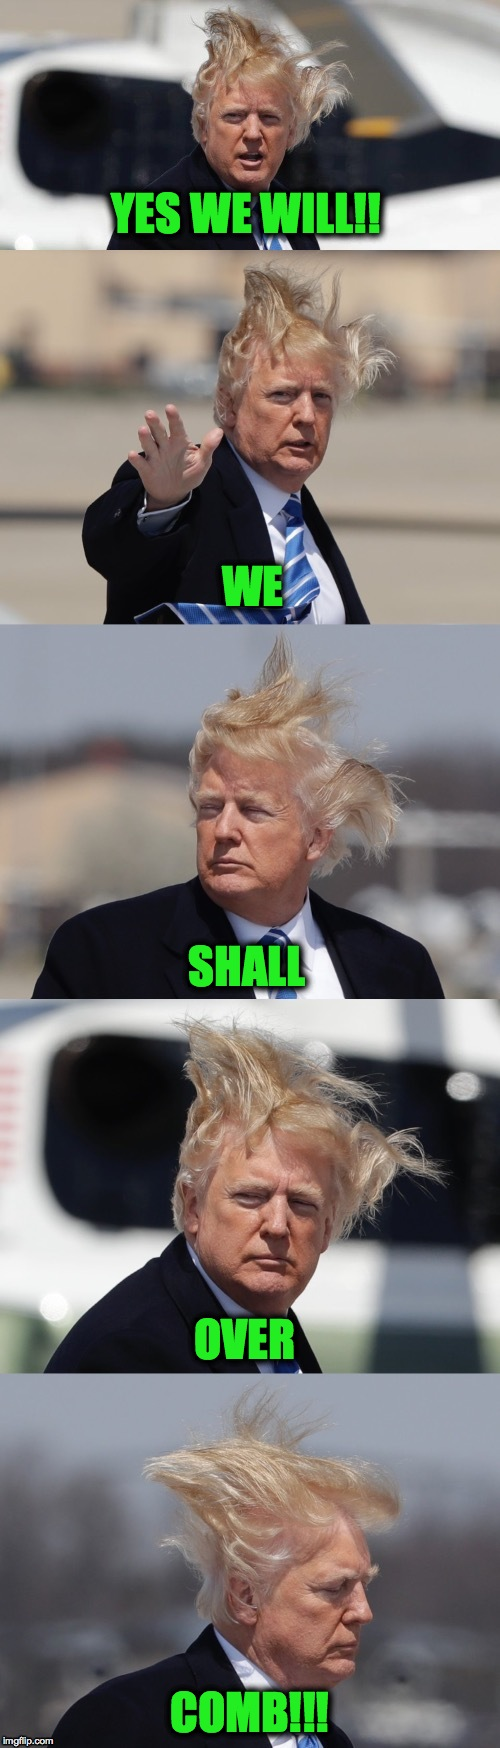 Sorry, Couldn't Resist!!! | YES WE WILL!! COMB!!! WE SHALL OVER | image tagged in overcomb | made w/ Imgflip meme maker